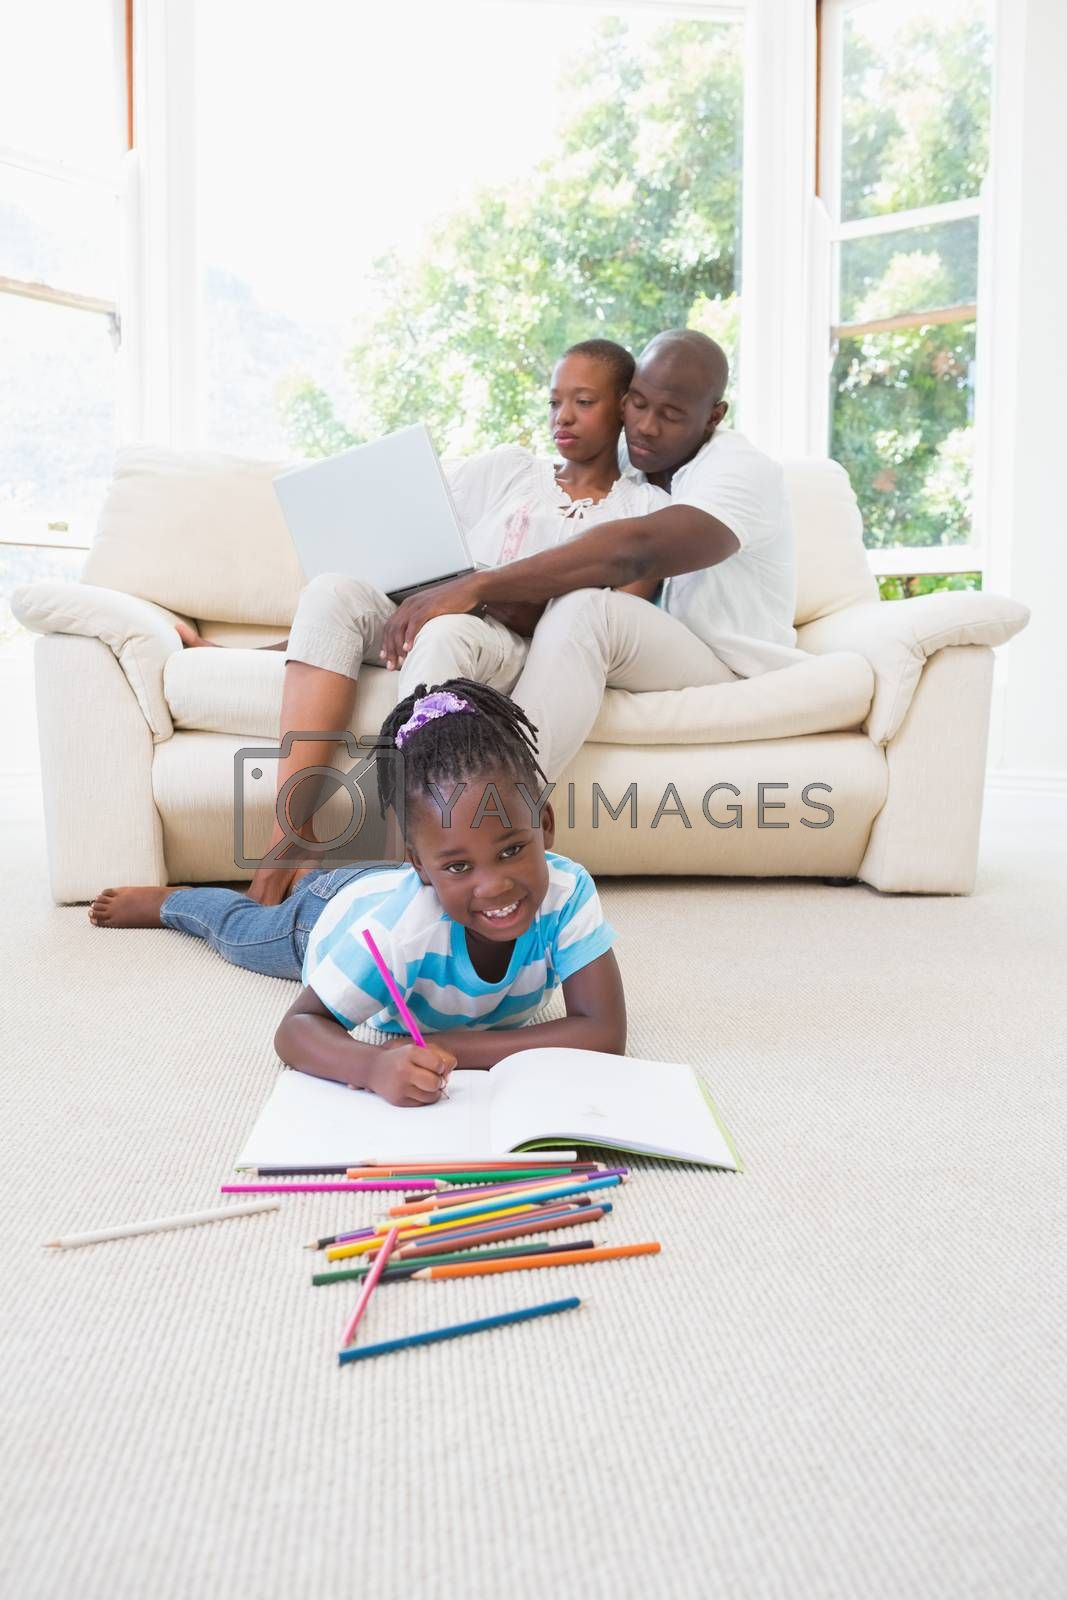 Royalty free image of Pretty couple using laptop on couch and their daughter drawing by Wavebreakmedia